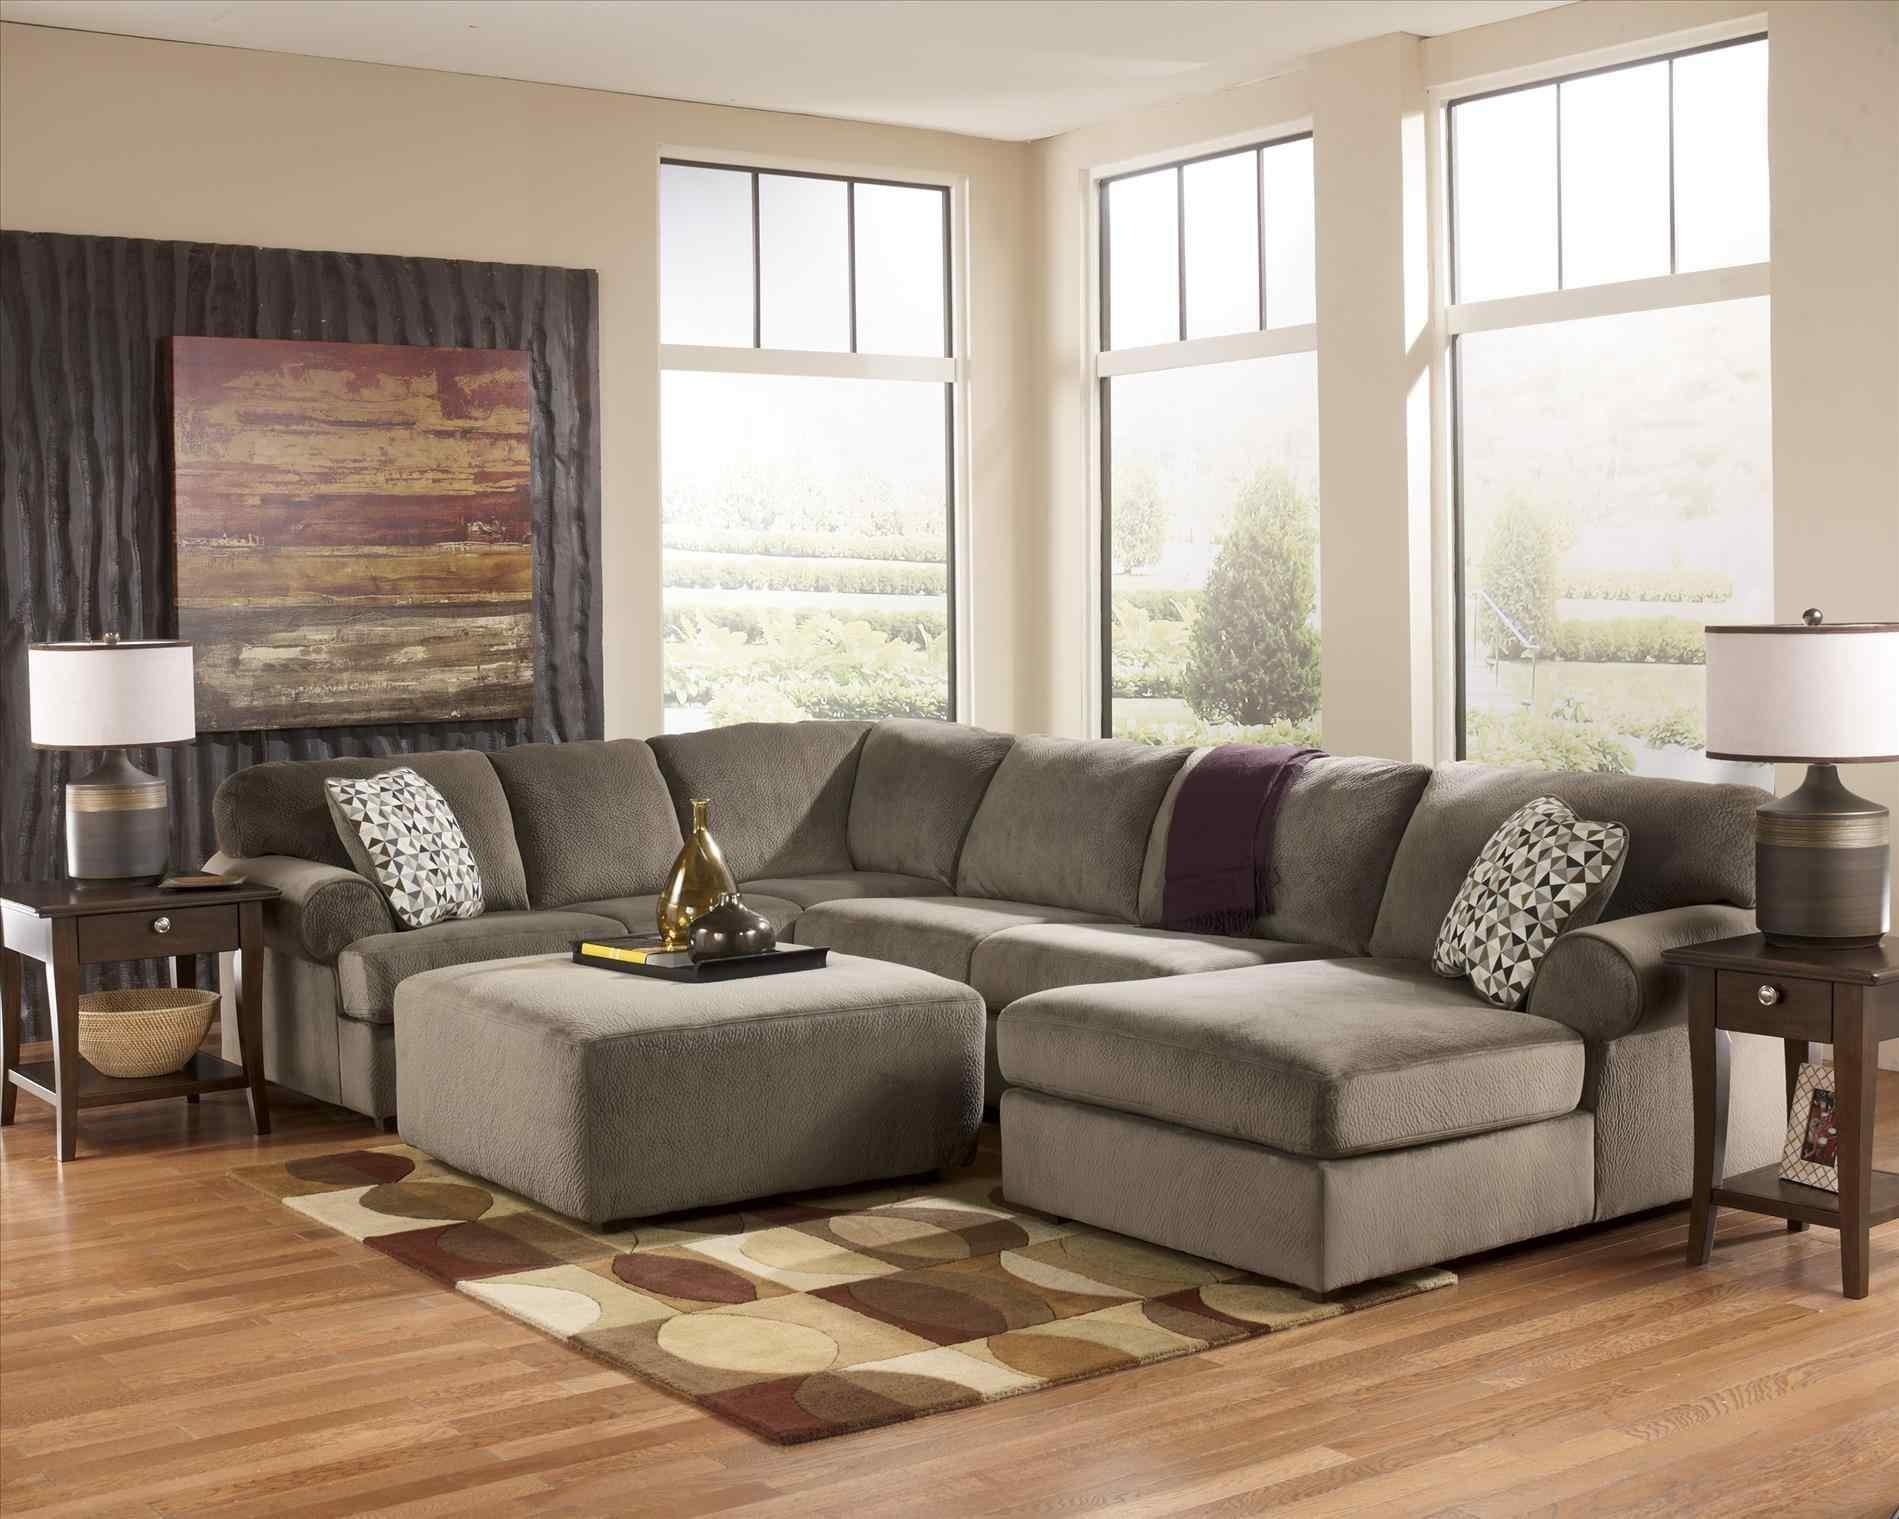 Large Sectional Sofa With Ottoman | Chair And Sofa Intended For Sectional Sofa With Large Ottoman (Image 7 of 20)